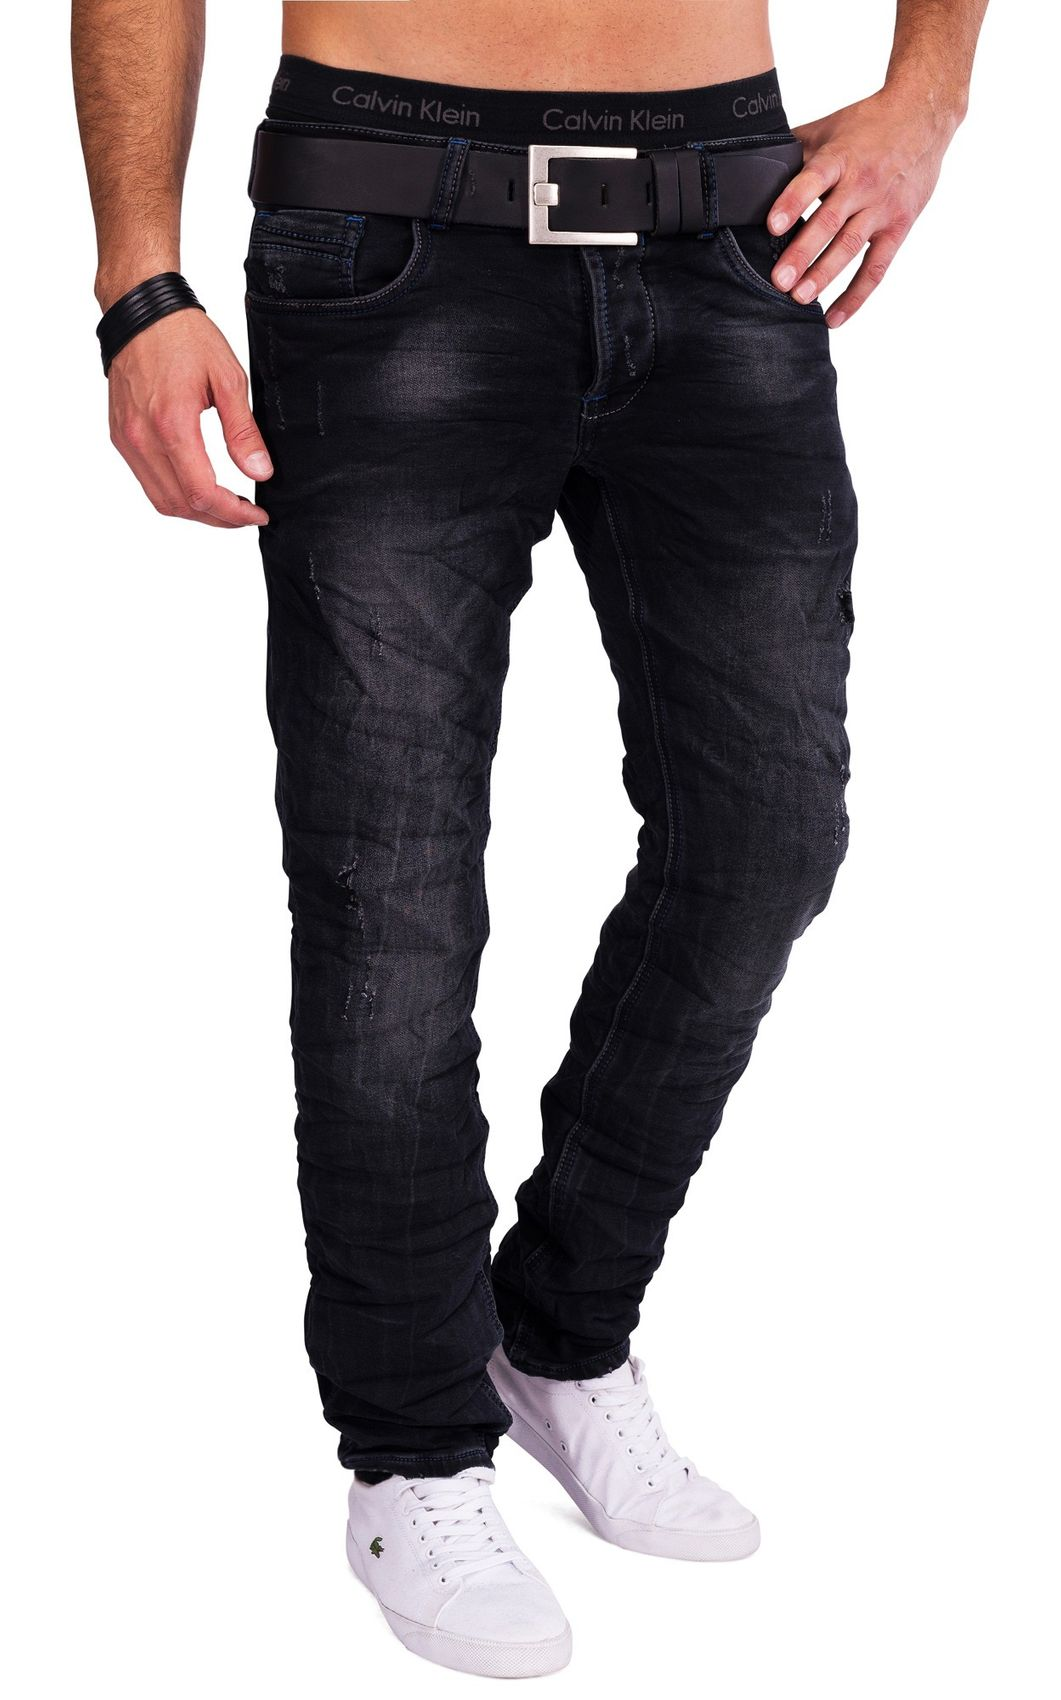 herren one public jeans schwarz destroyed denim slim fit zerissen used look ebay. Black Bedroom Furniture Sets. Home Design Ideas